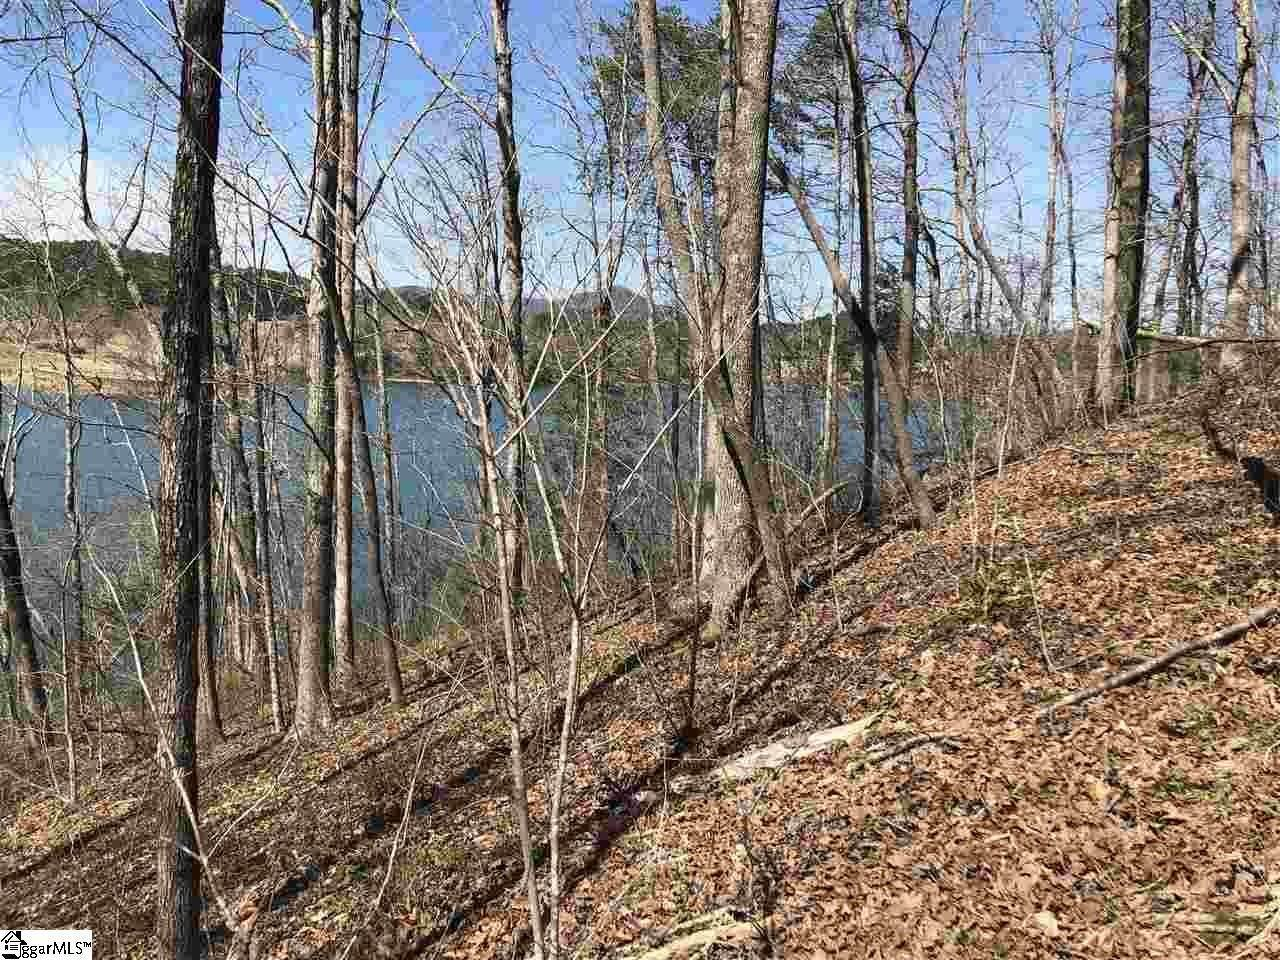 19. Residential Lot for Sale at The Reserve At Lake Keowee, Sunset, SC 29685